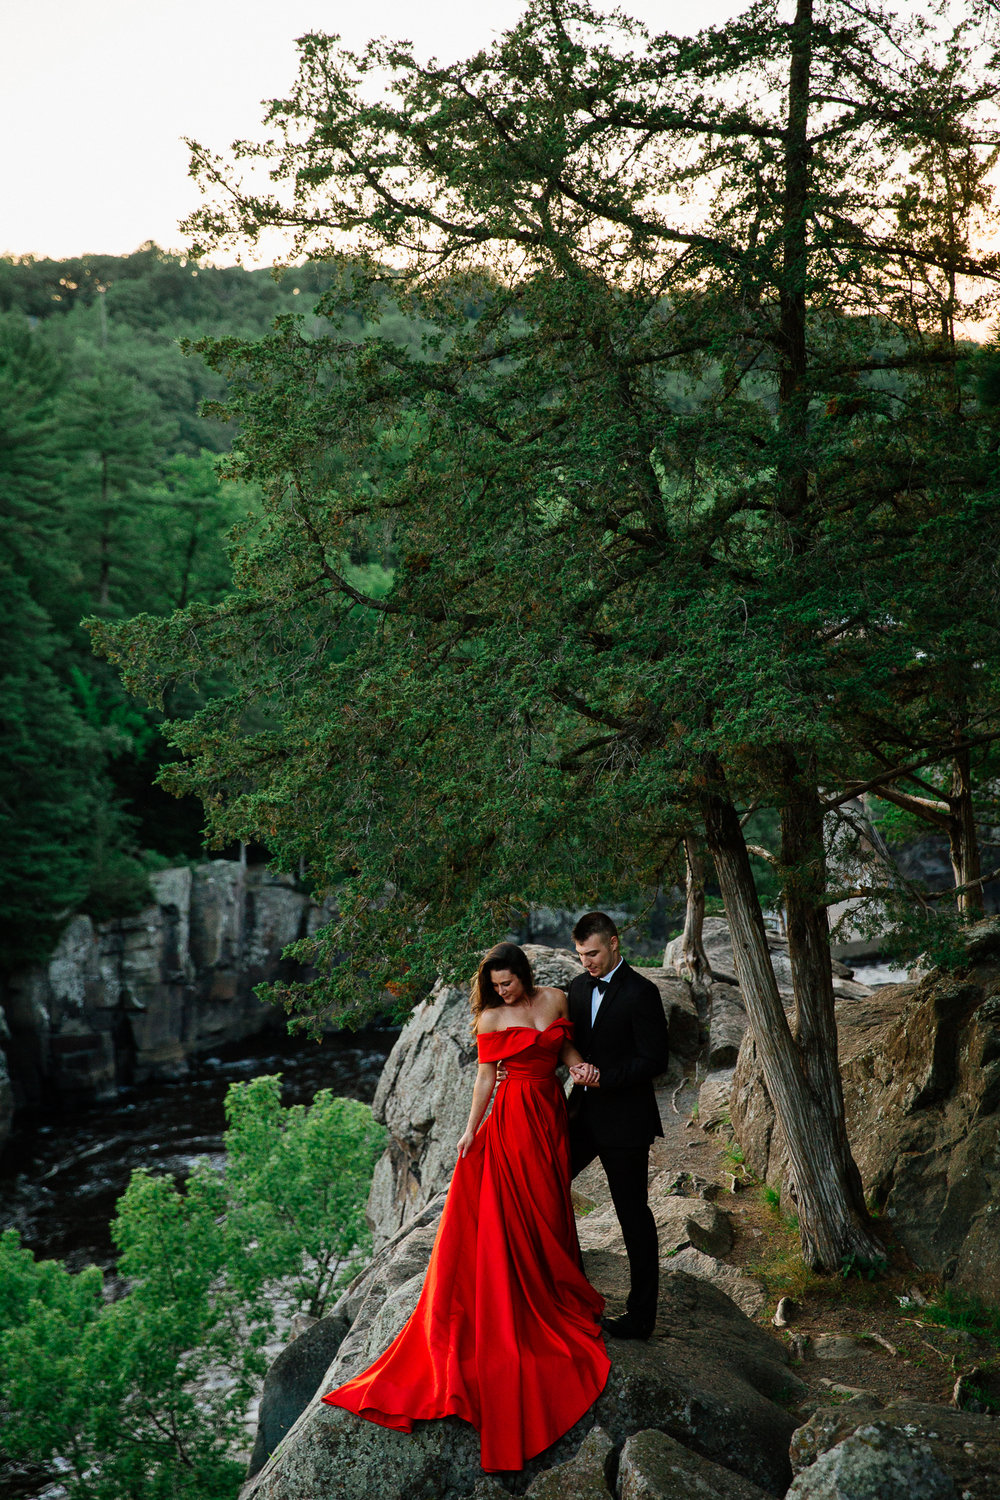 Jen_Montgomery_Photography_Allison&David_Couple_FB-63.jpg